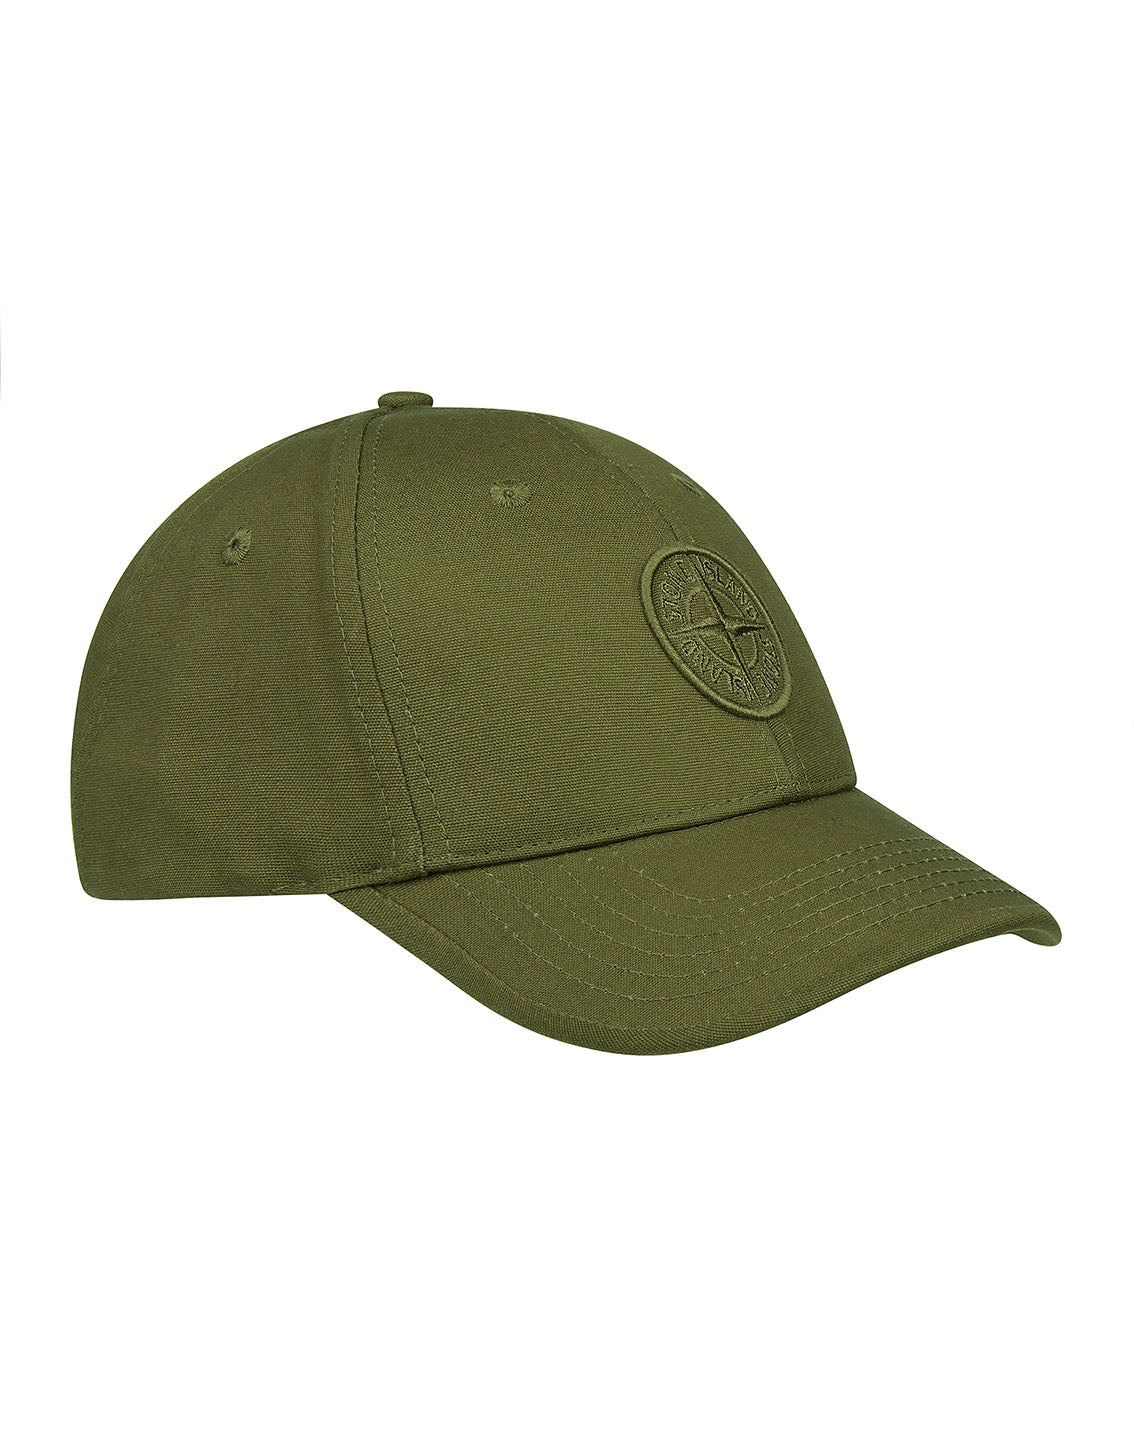 90265 Hat in Military Green